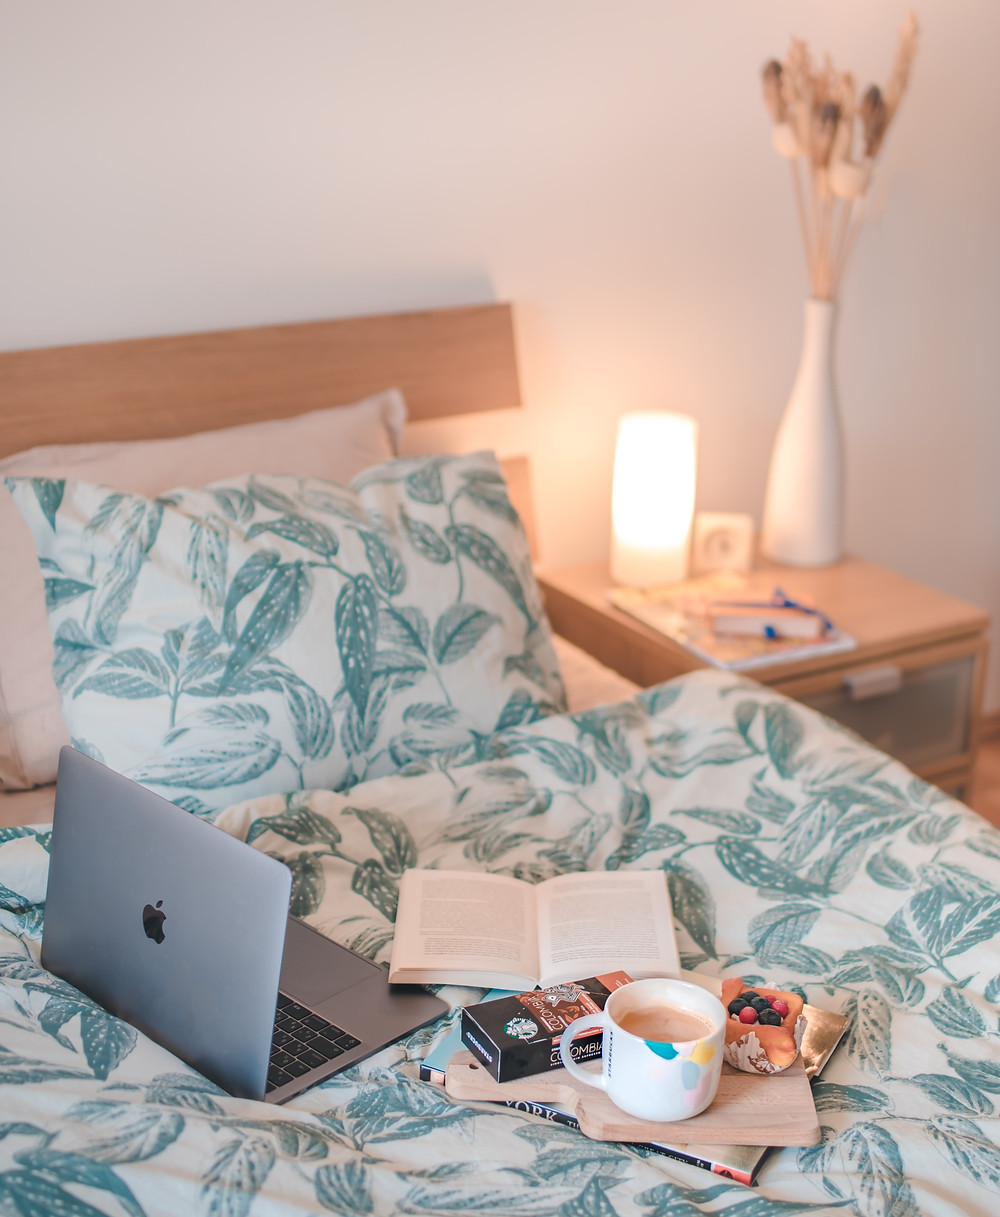 Working from home set up on a bed